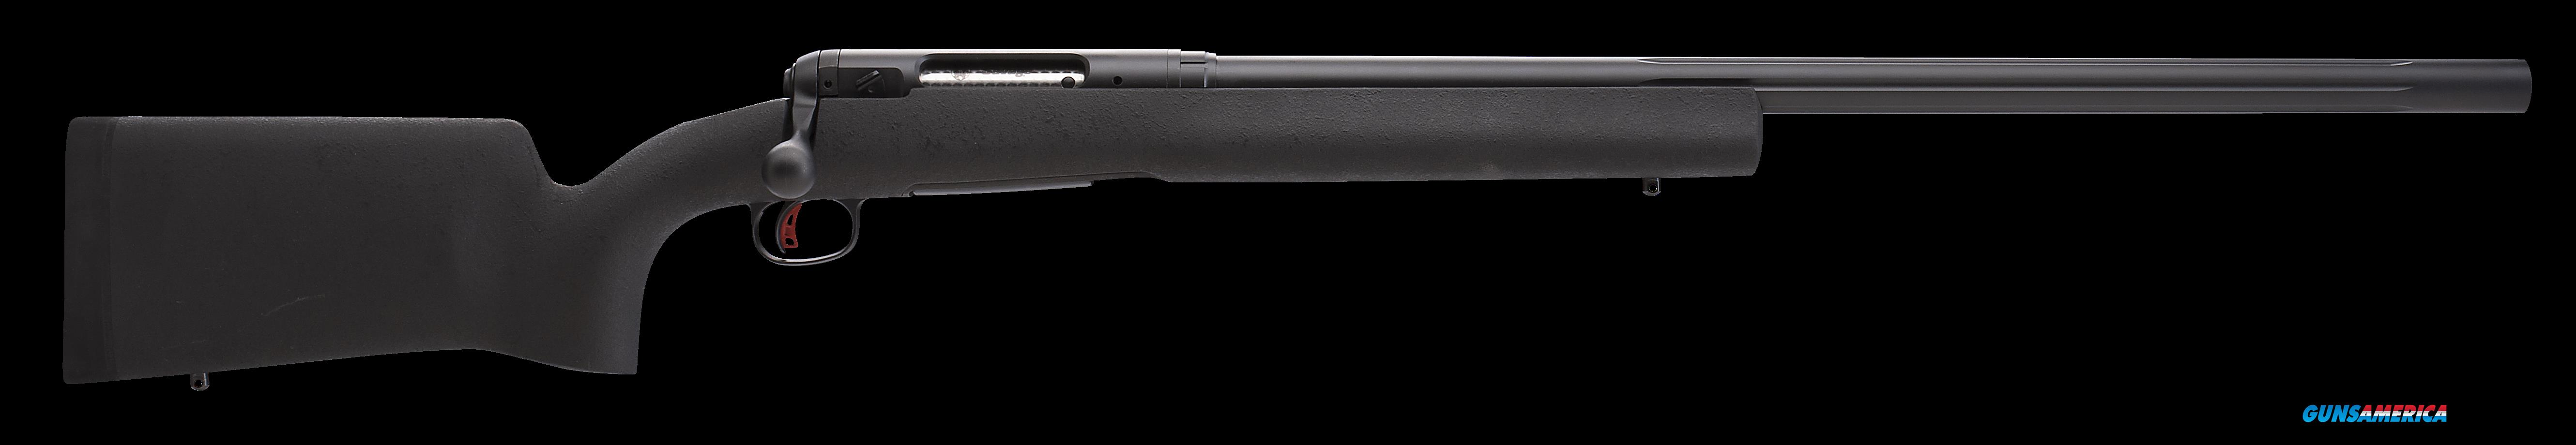 "Savage 19136 12 Long Range Precision Bolt 243 Win 26"" 4+1 Synthetic Black Stk Black  Guns > Rifles > S Misc Rifles"